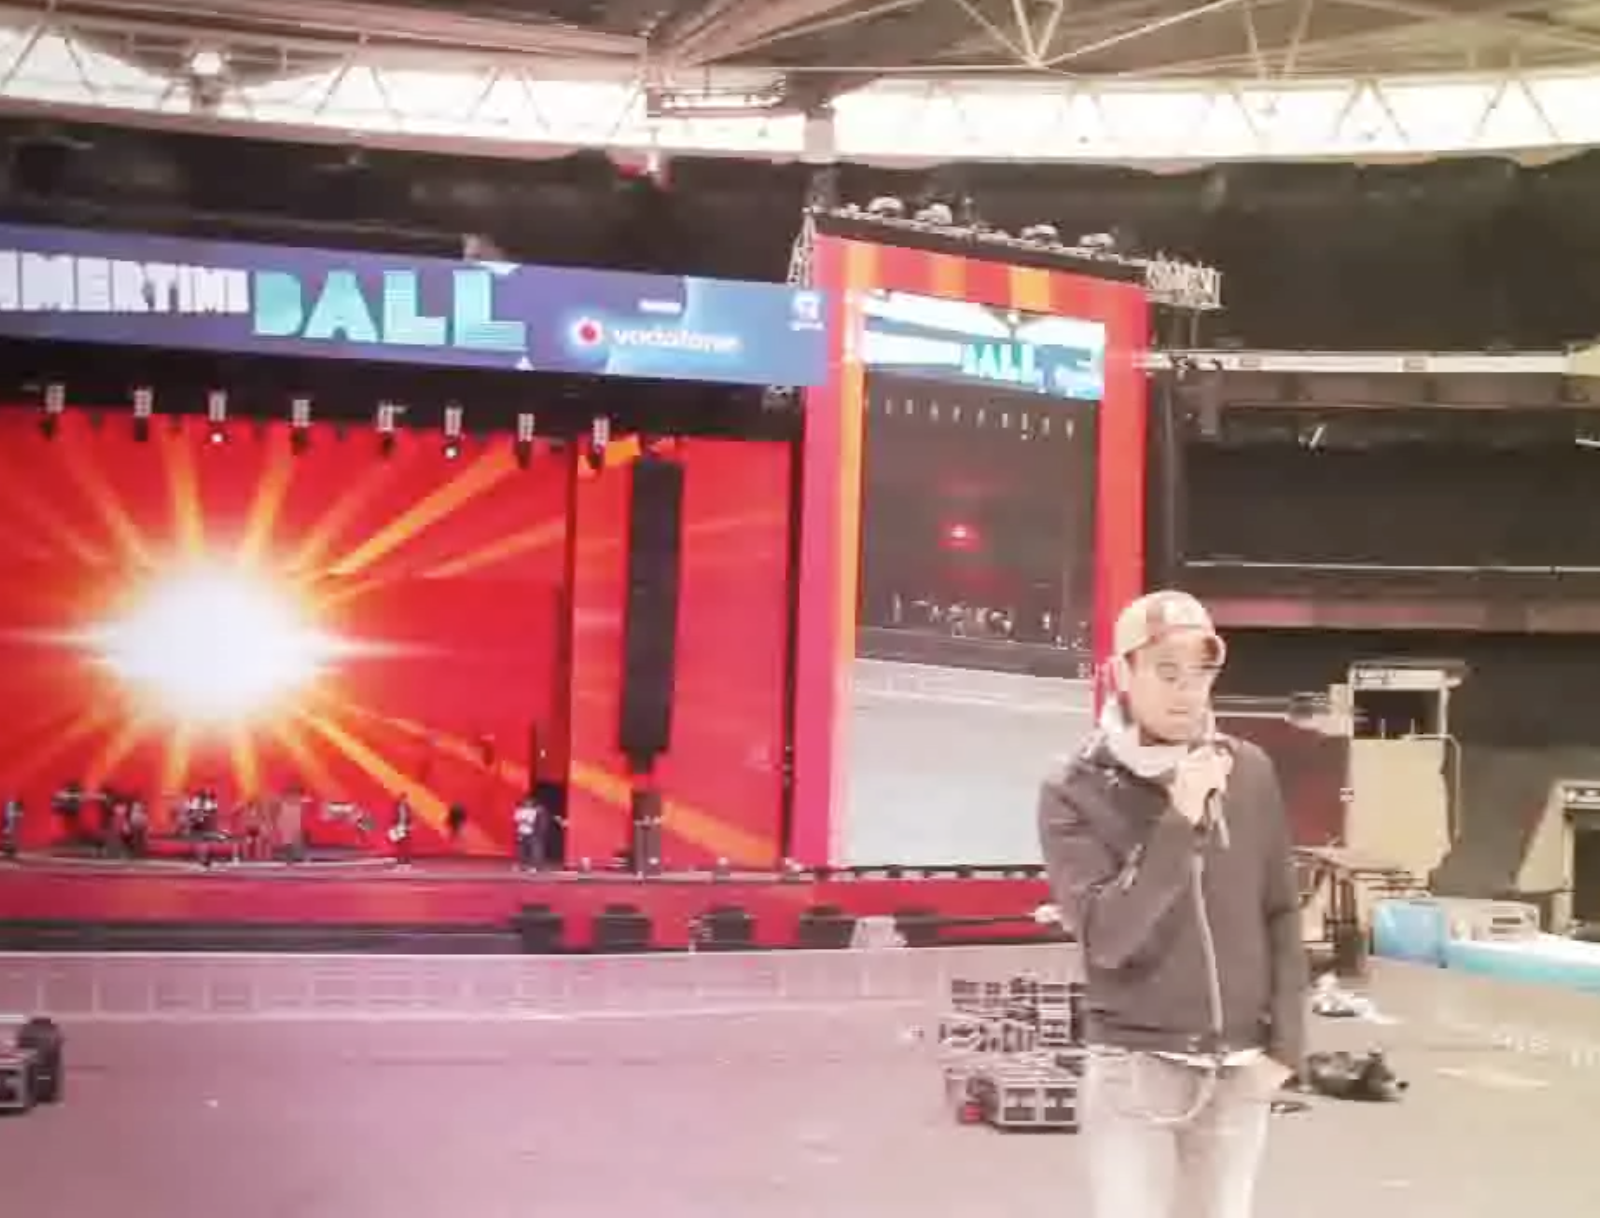 #Soundcheck at  Wembley Stadium for #capitalsummertimeball last #Summer http://t.co/c8xMDgh9WD http://t.co/Ibl4nBmjrb